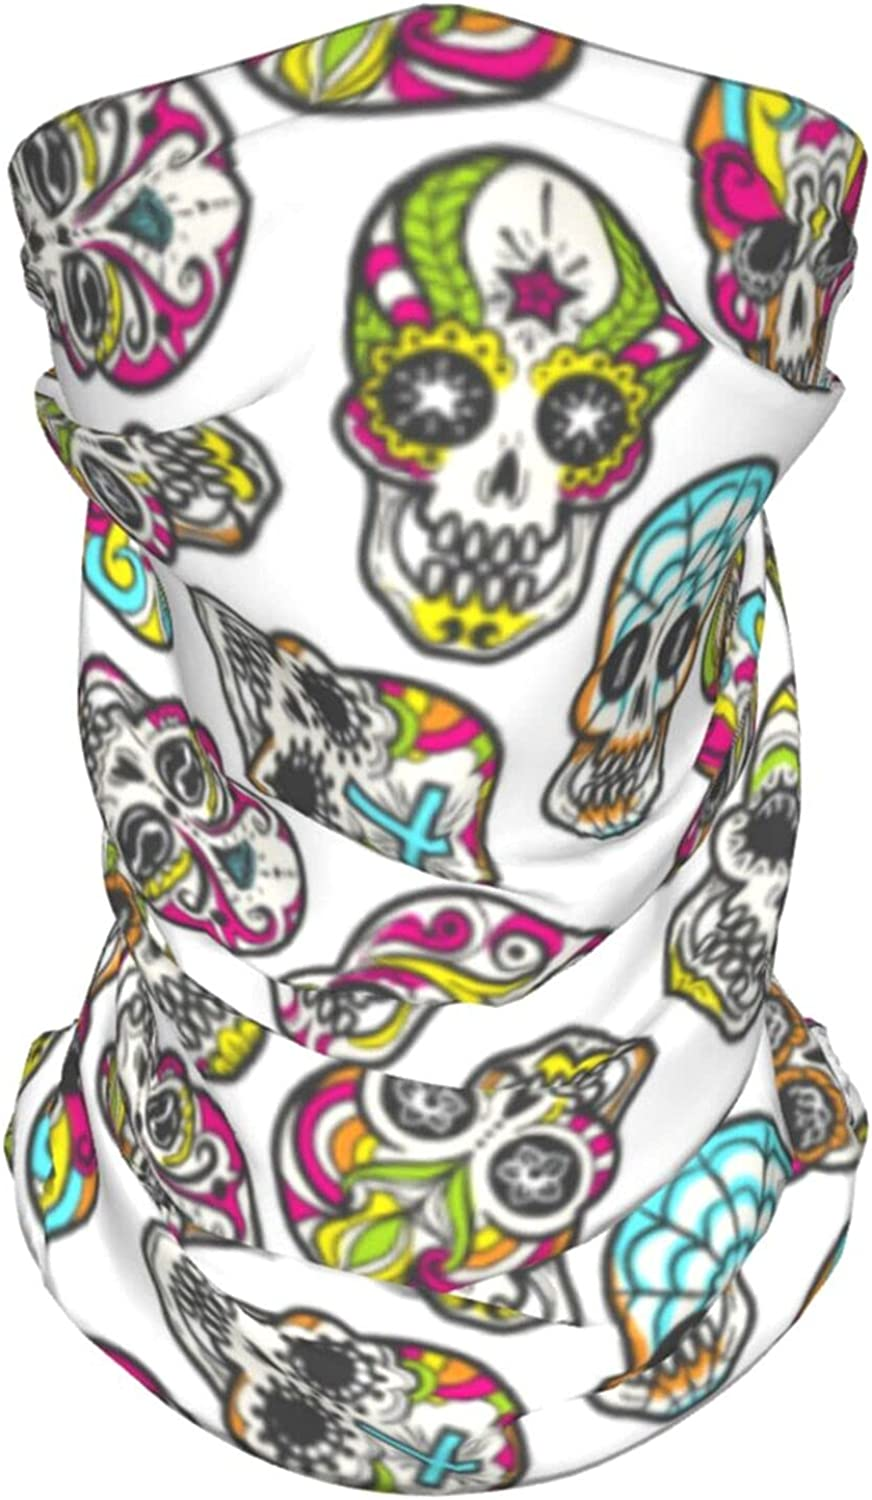 Colorful Mexican Sugar Skull Summer Ice Silk Breathable Face Mask Neck Gaiter Scarf Bandanas for Fishing,Hiking,Running,Motorcycle and Daily Wear